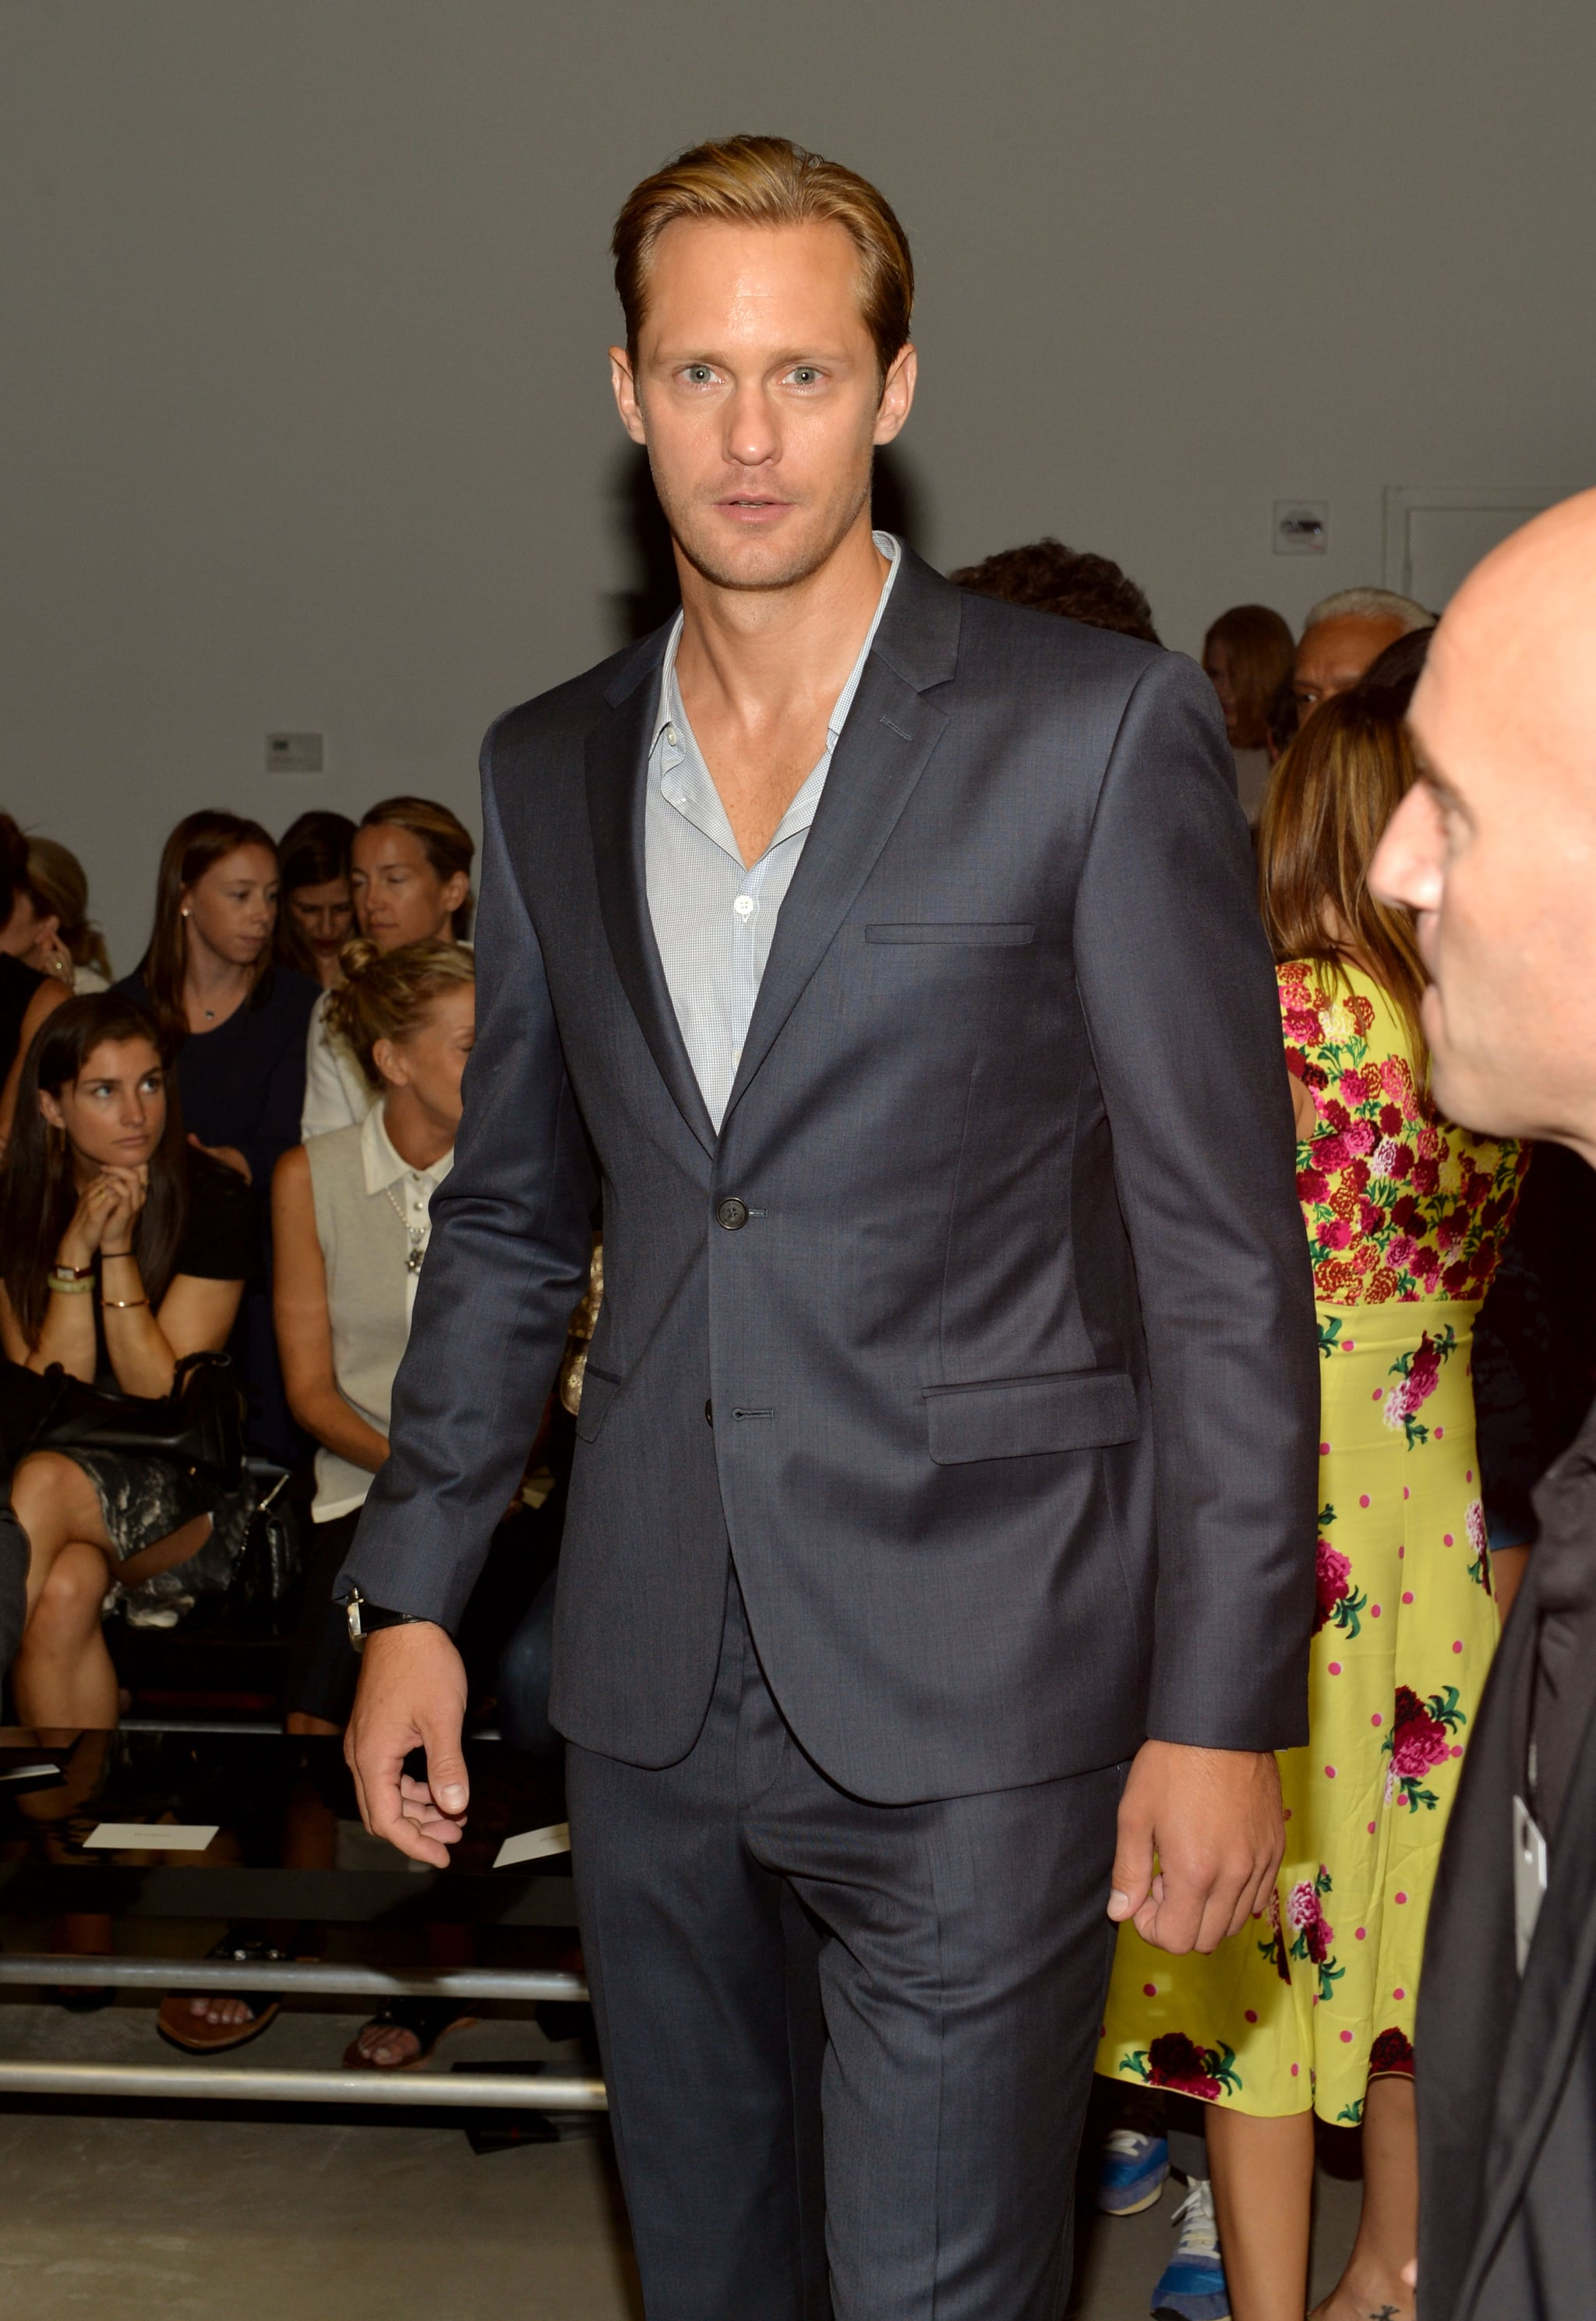 Alexander Skarsgard looked handsome in a blue suit at the Calvin Klein fashion show on Wednesday.